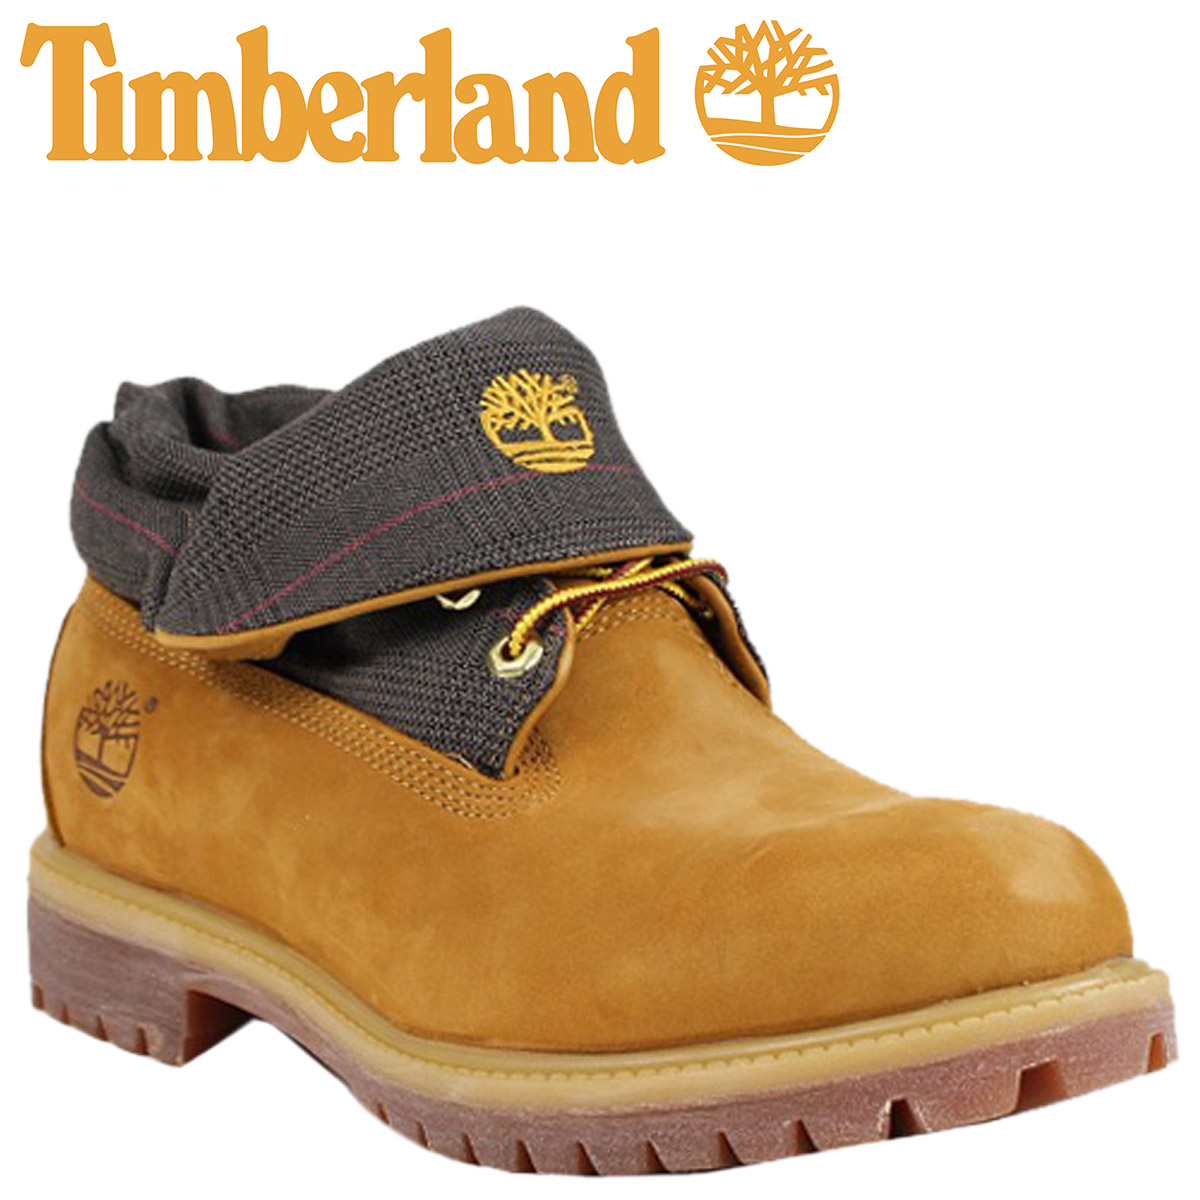 [SOLD OUT]timbarando Timberland角色頂罩惠特6138R Roll Top Nubuck Wheat人